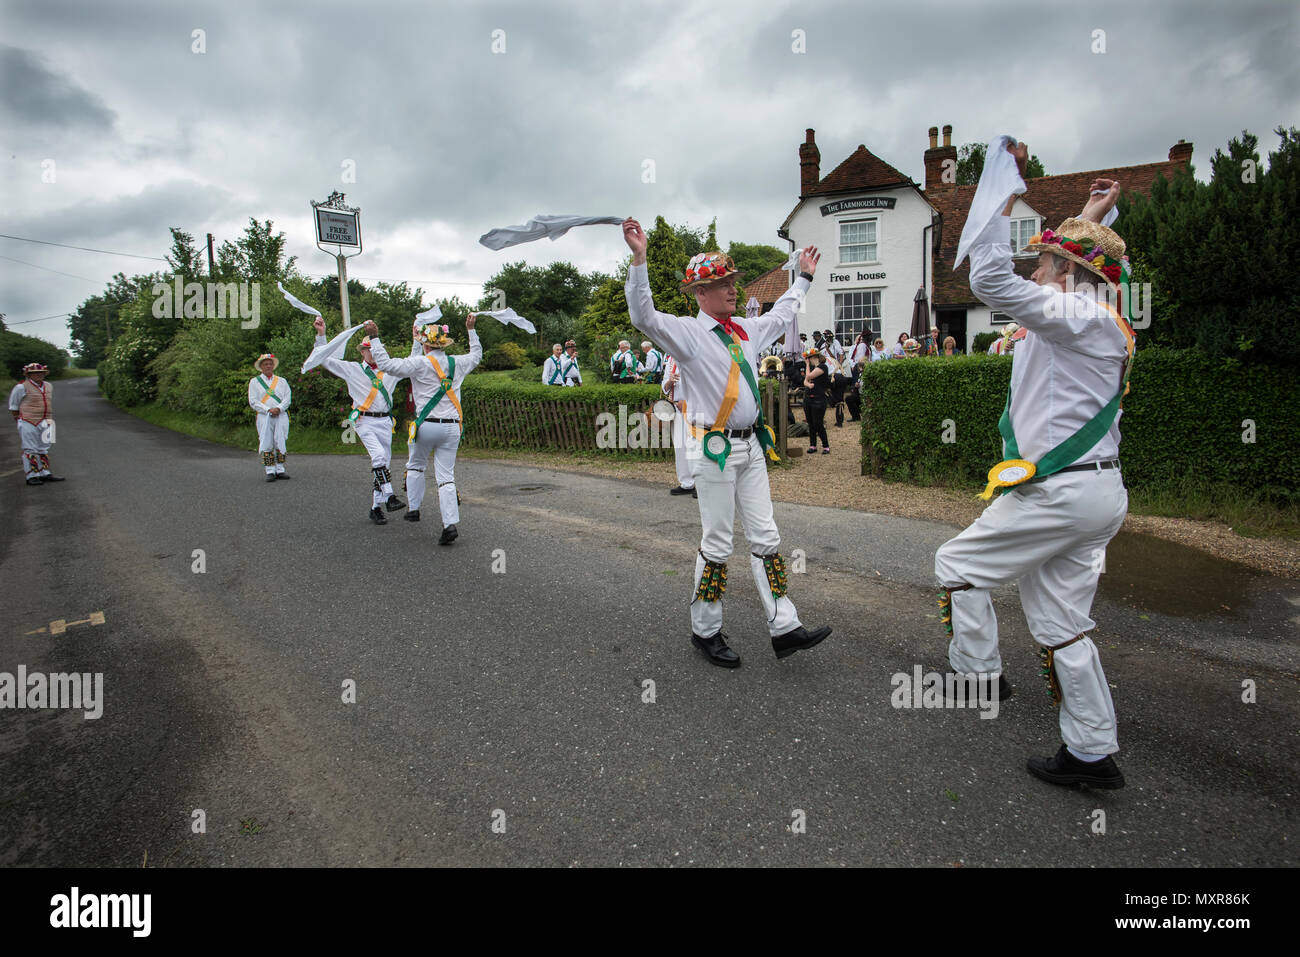 Thaxted Morris Weekend 2-3 June 2018 Lincoln and Micklebarrow Morris Dancing side outside the Farmhouse Inn, Monk Street, Thaxted - Stock Image